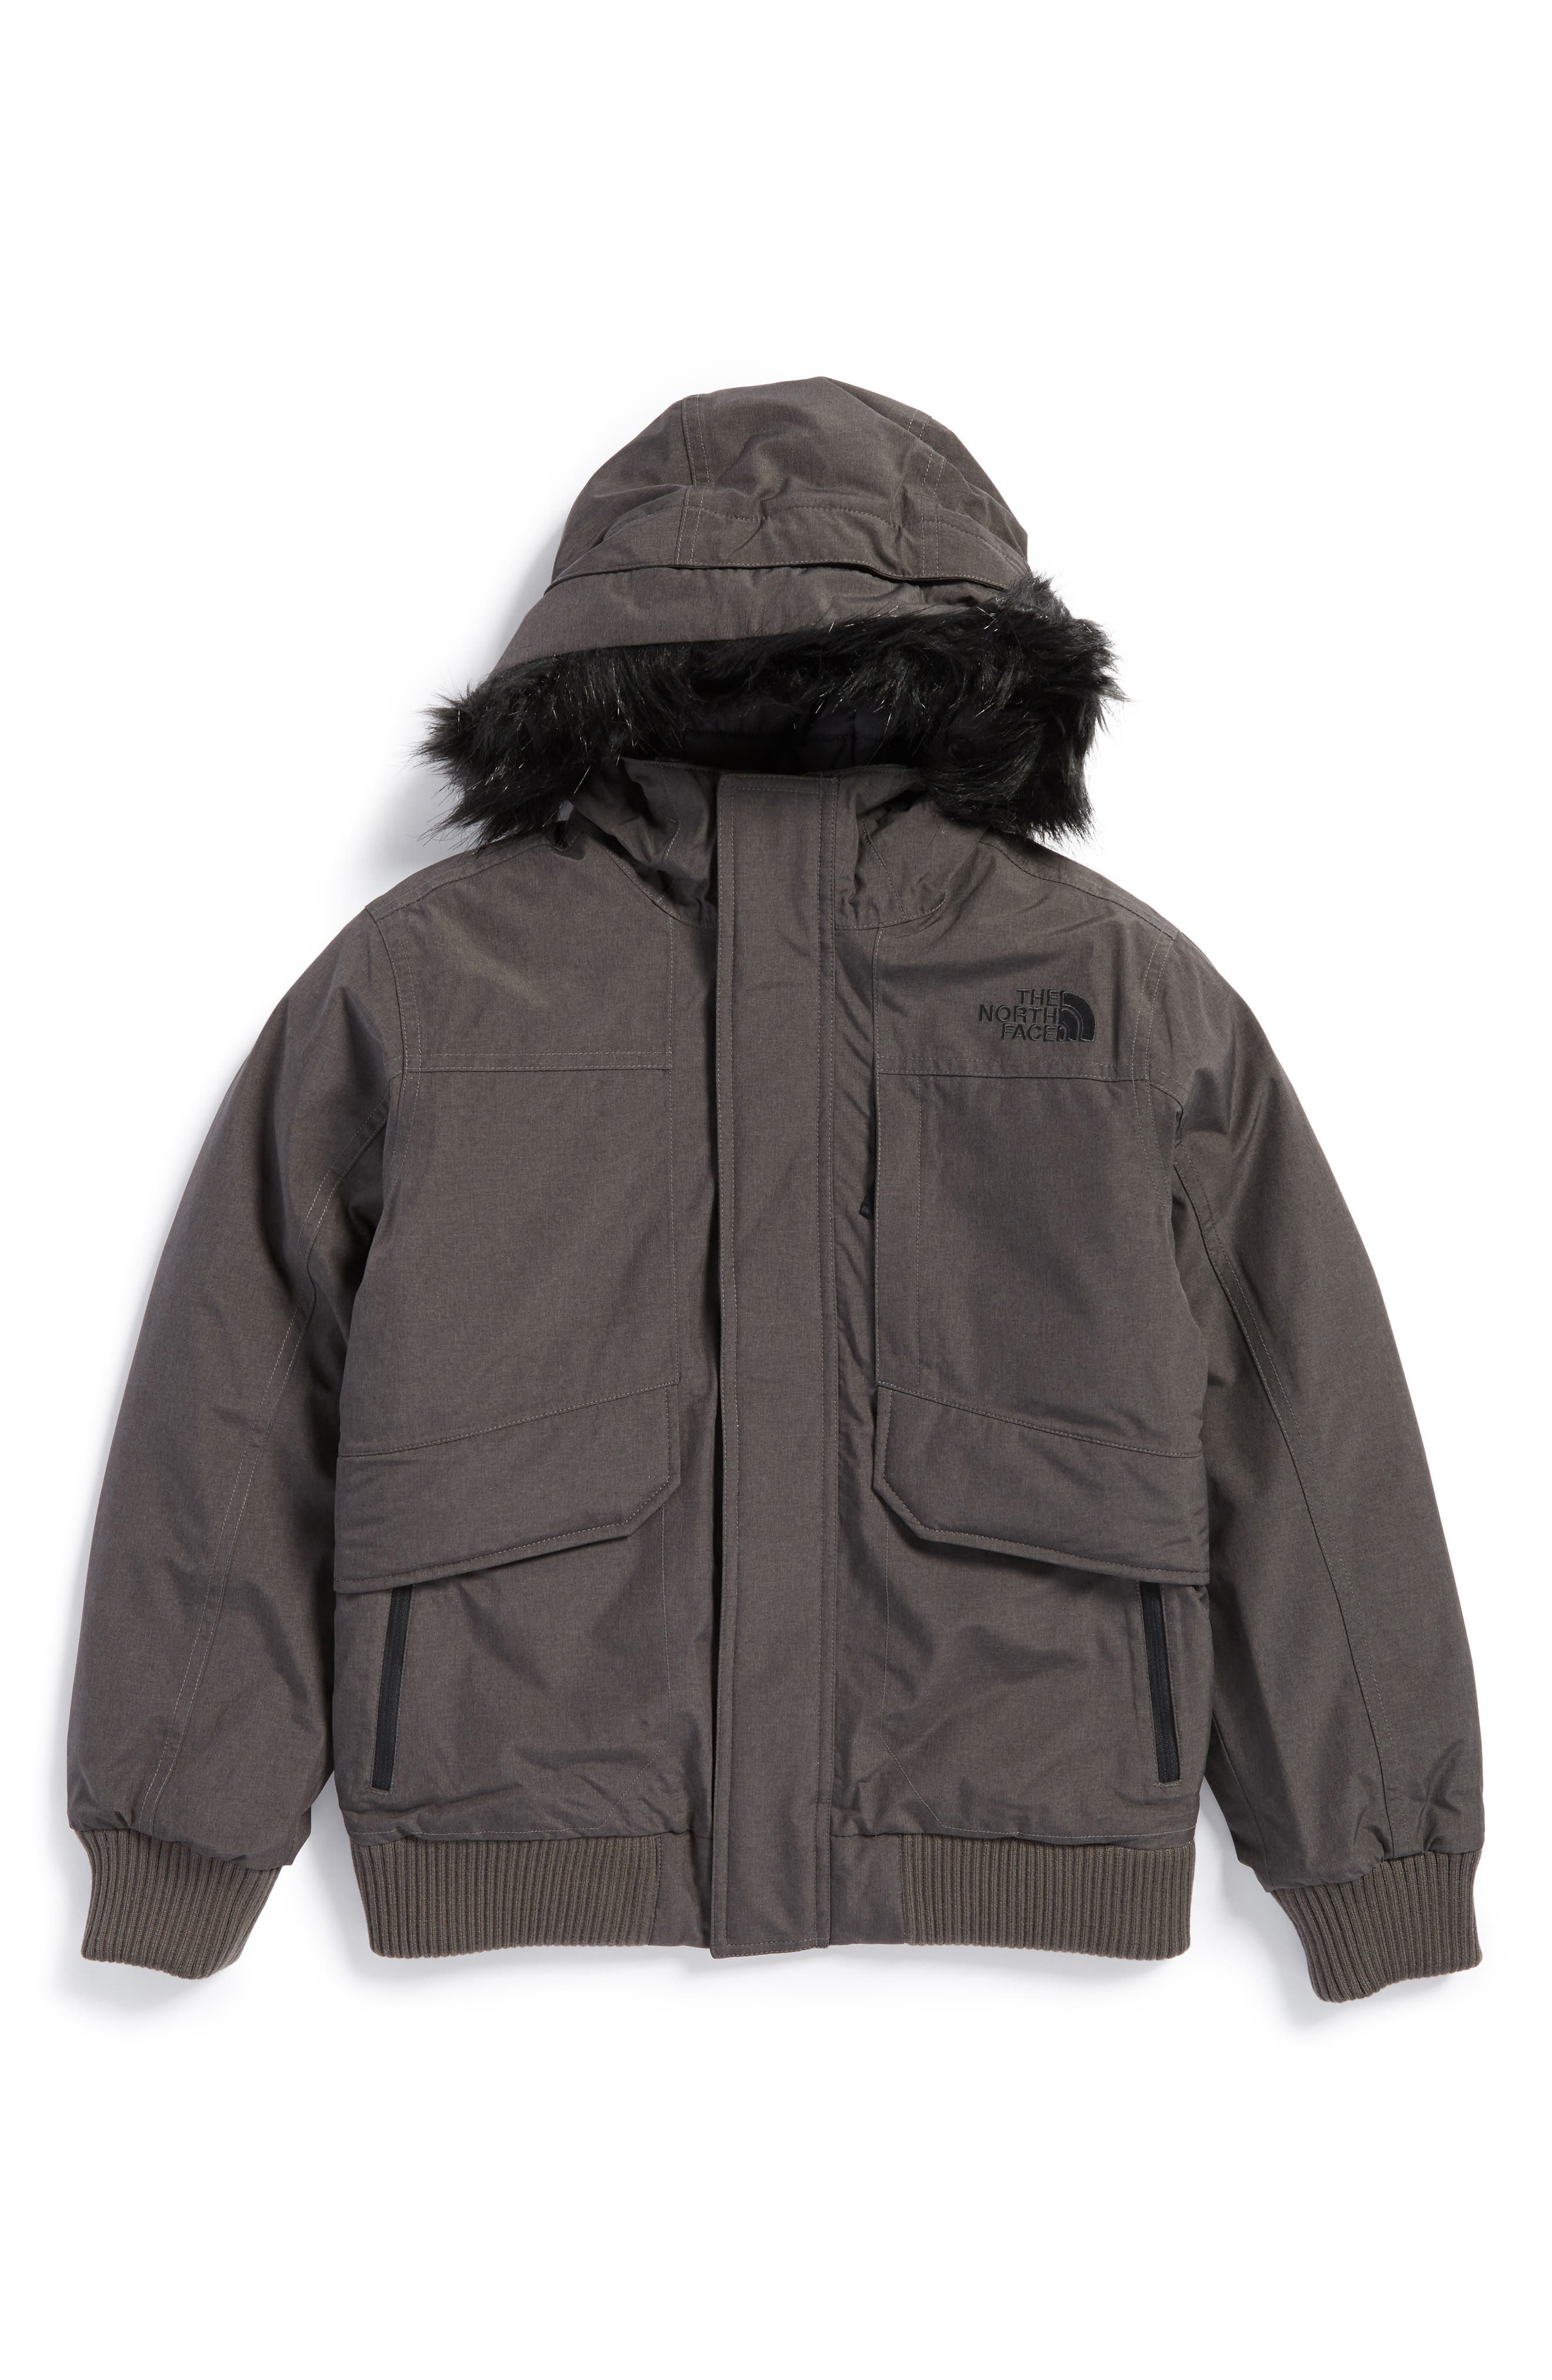 Alternate Image 1 Selected - The North Face Gotham Hooded Waterproof 550-Fill Power Down Jacket (Big Boys)